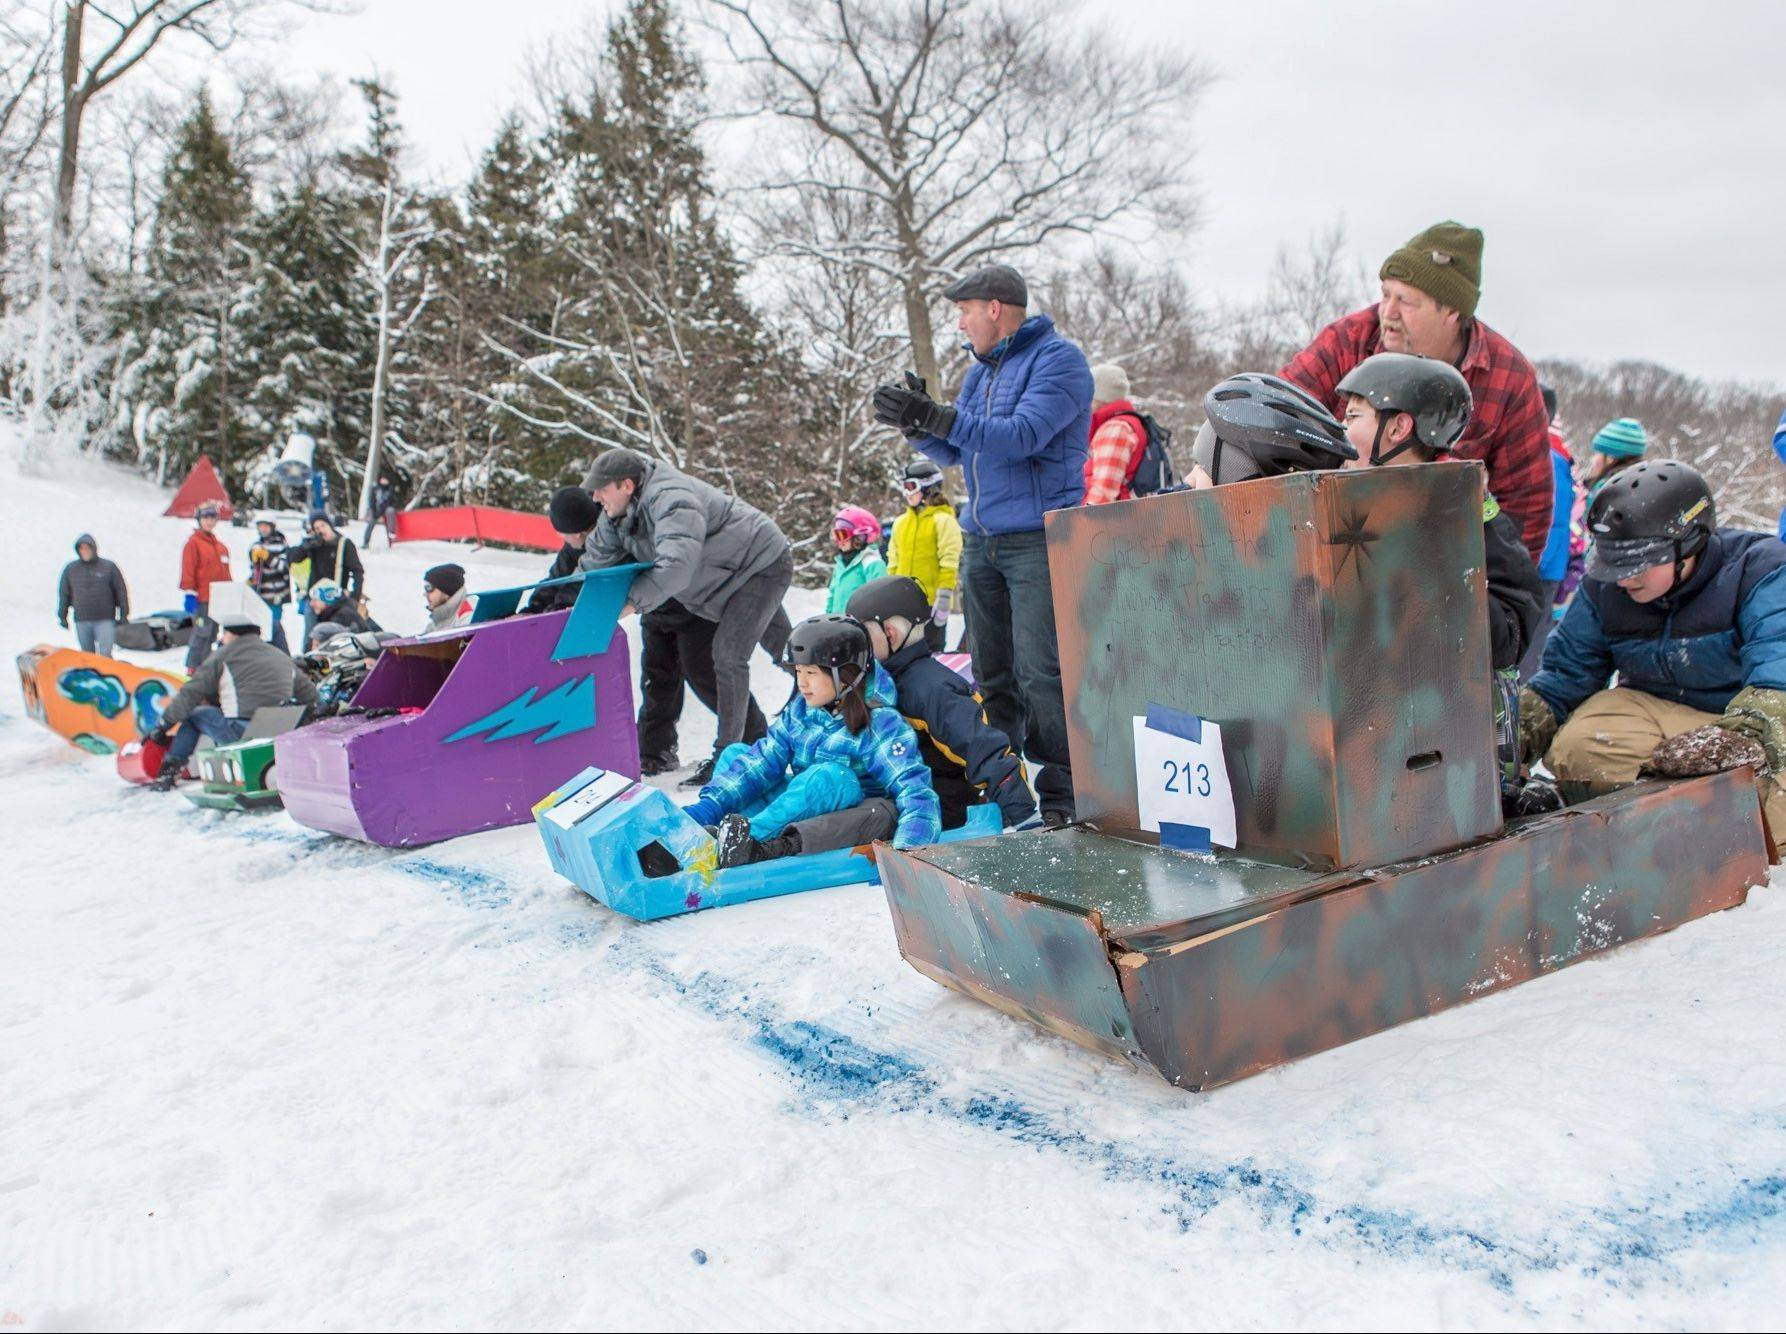 The cardboard and duct tape sled race is just one of the fun activities at Winterfest in Grand Haven, Mich., from Jan. 23-26.